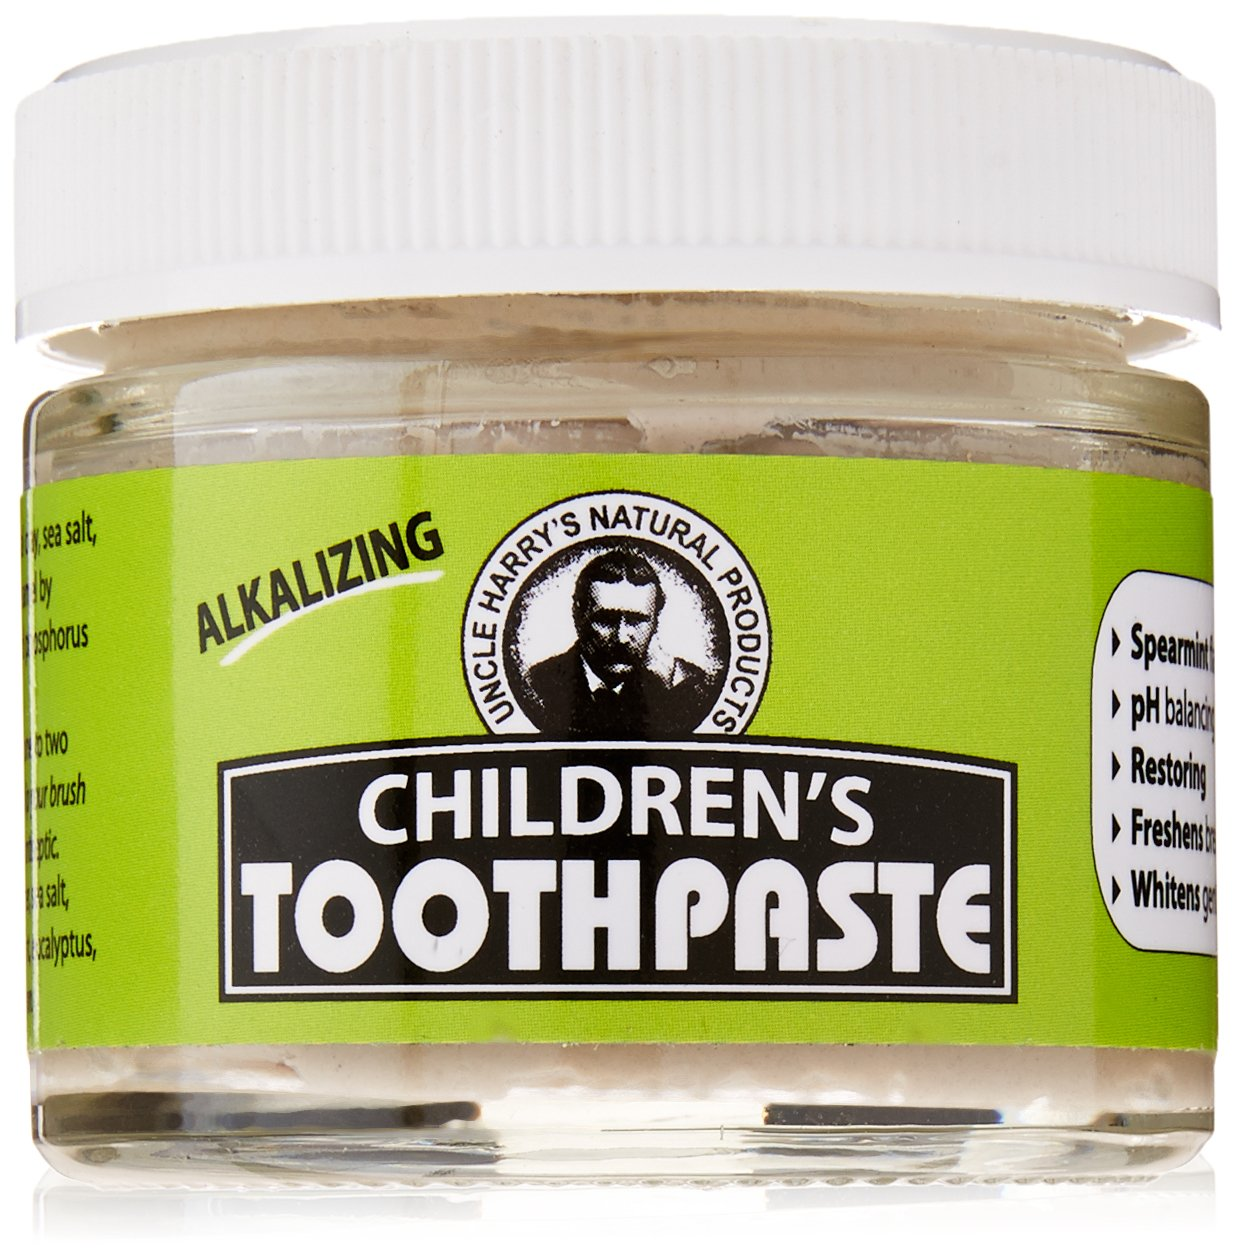 Best Toothpaste 2020 Top 20 Best Toothpaste for Children 2019 2020 on Flipboard by AvaDew